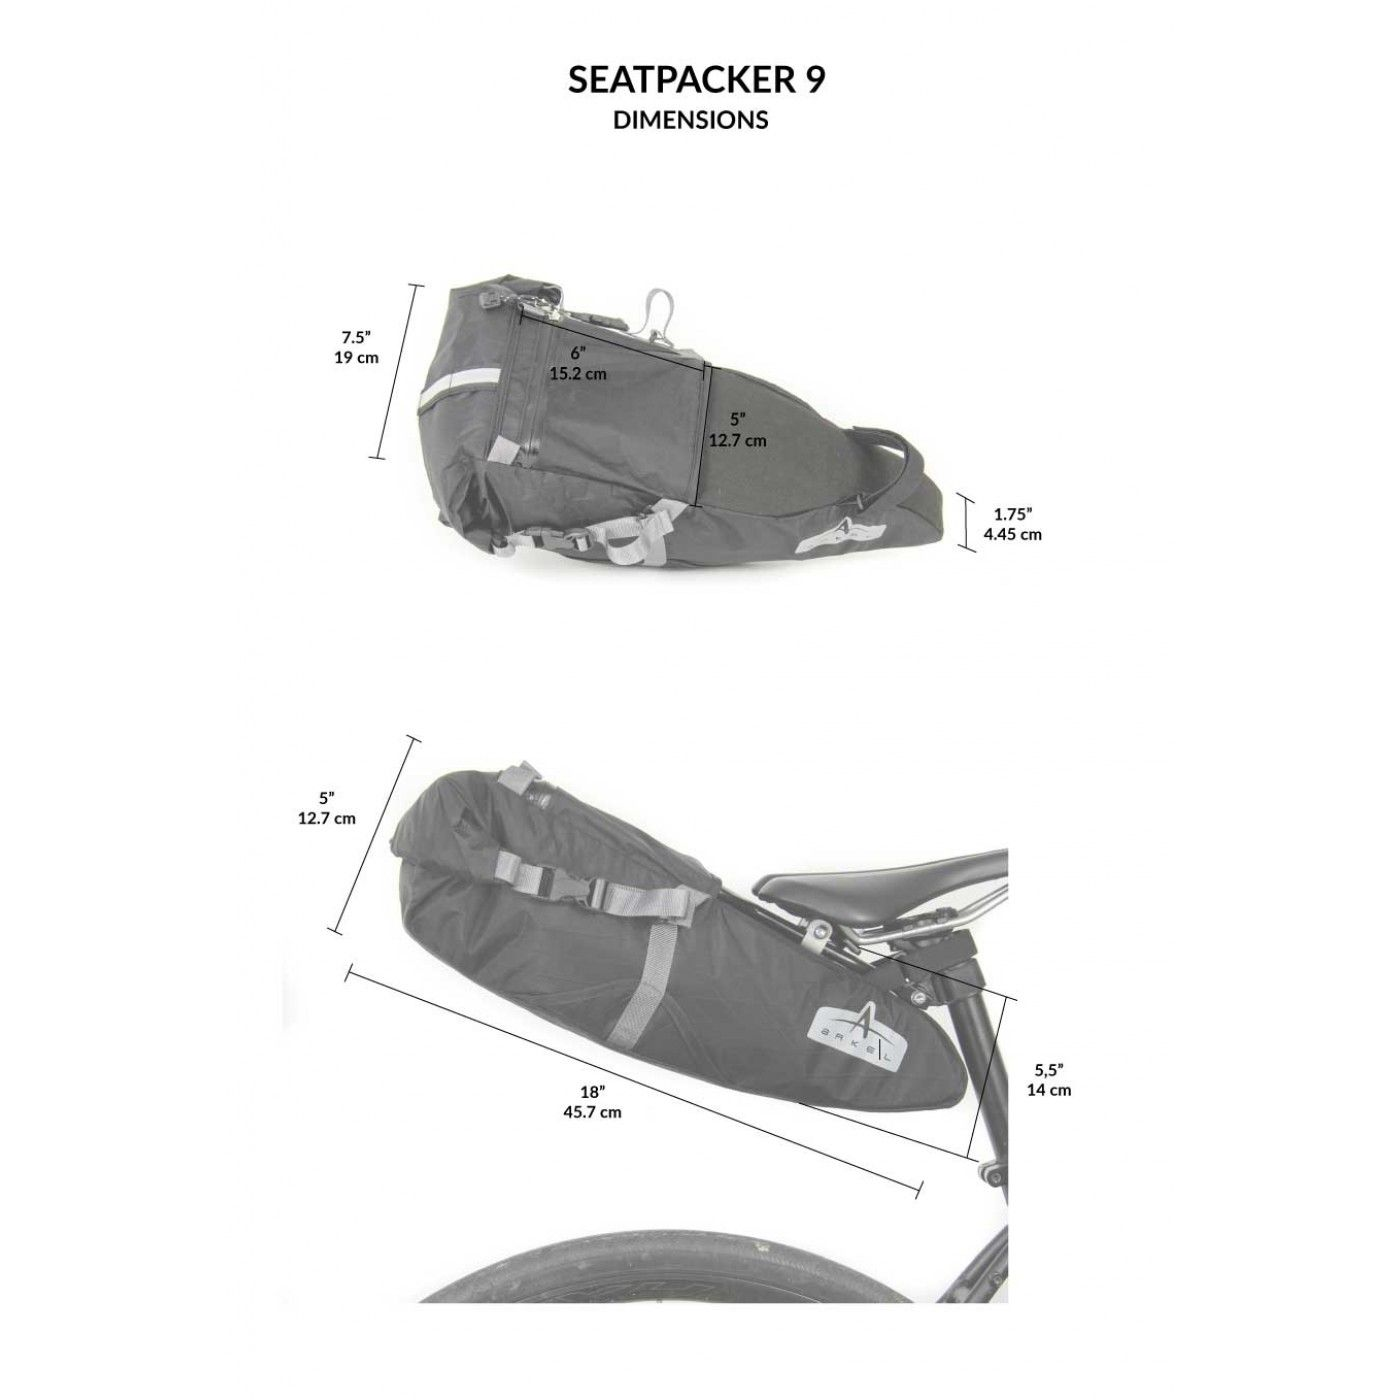 bikepacking seat bag Seatpacker 9 model by Arkel | MTB | Pinterest ...